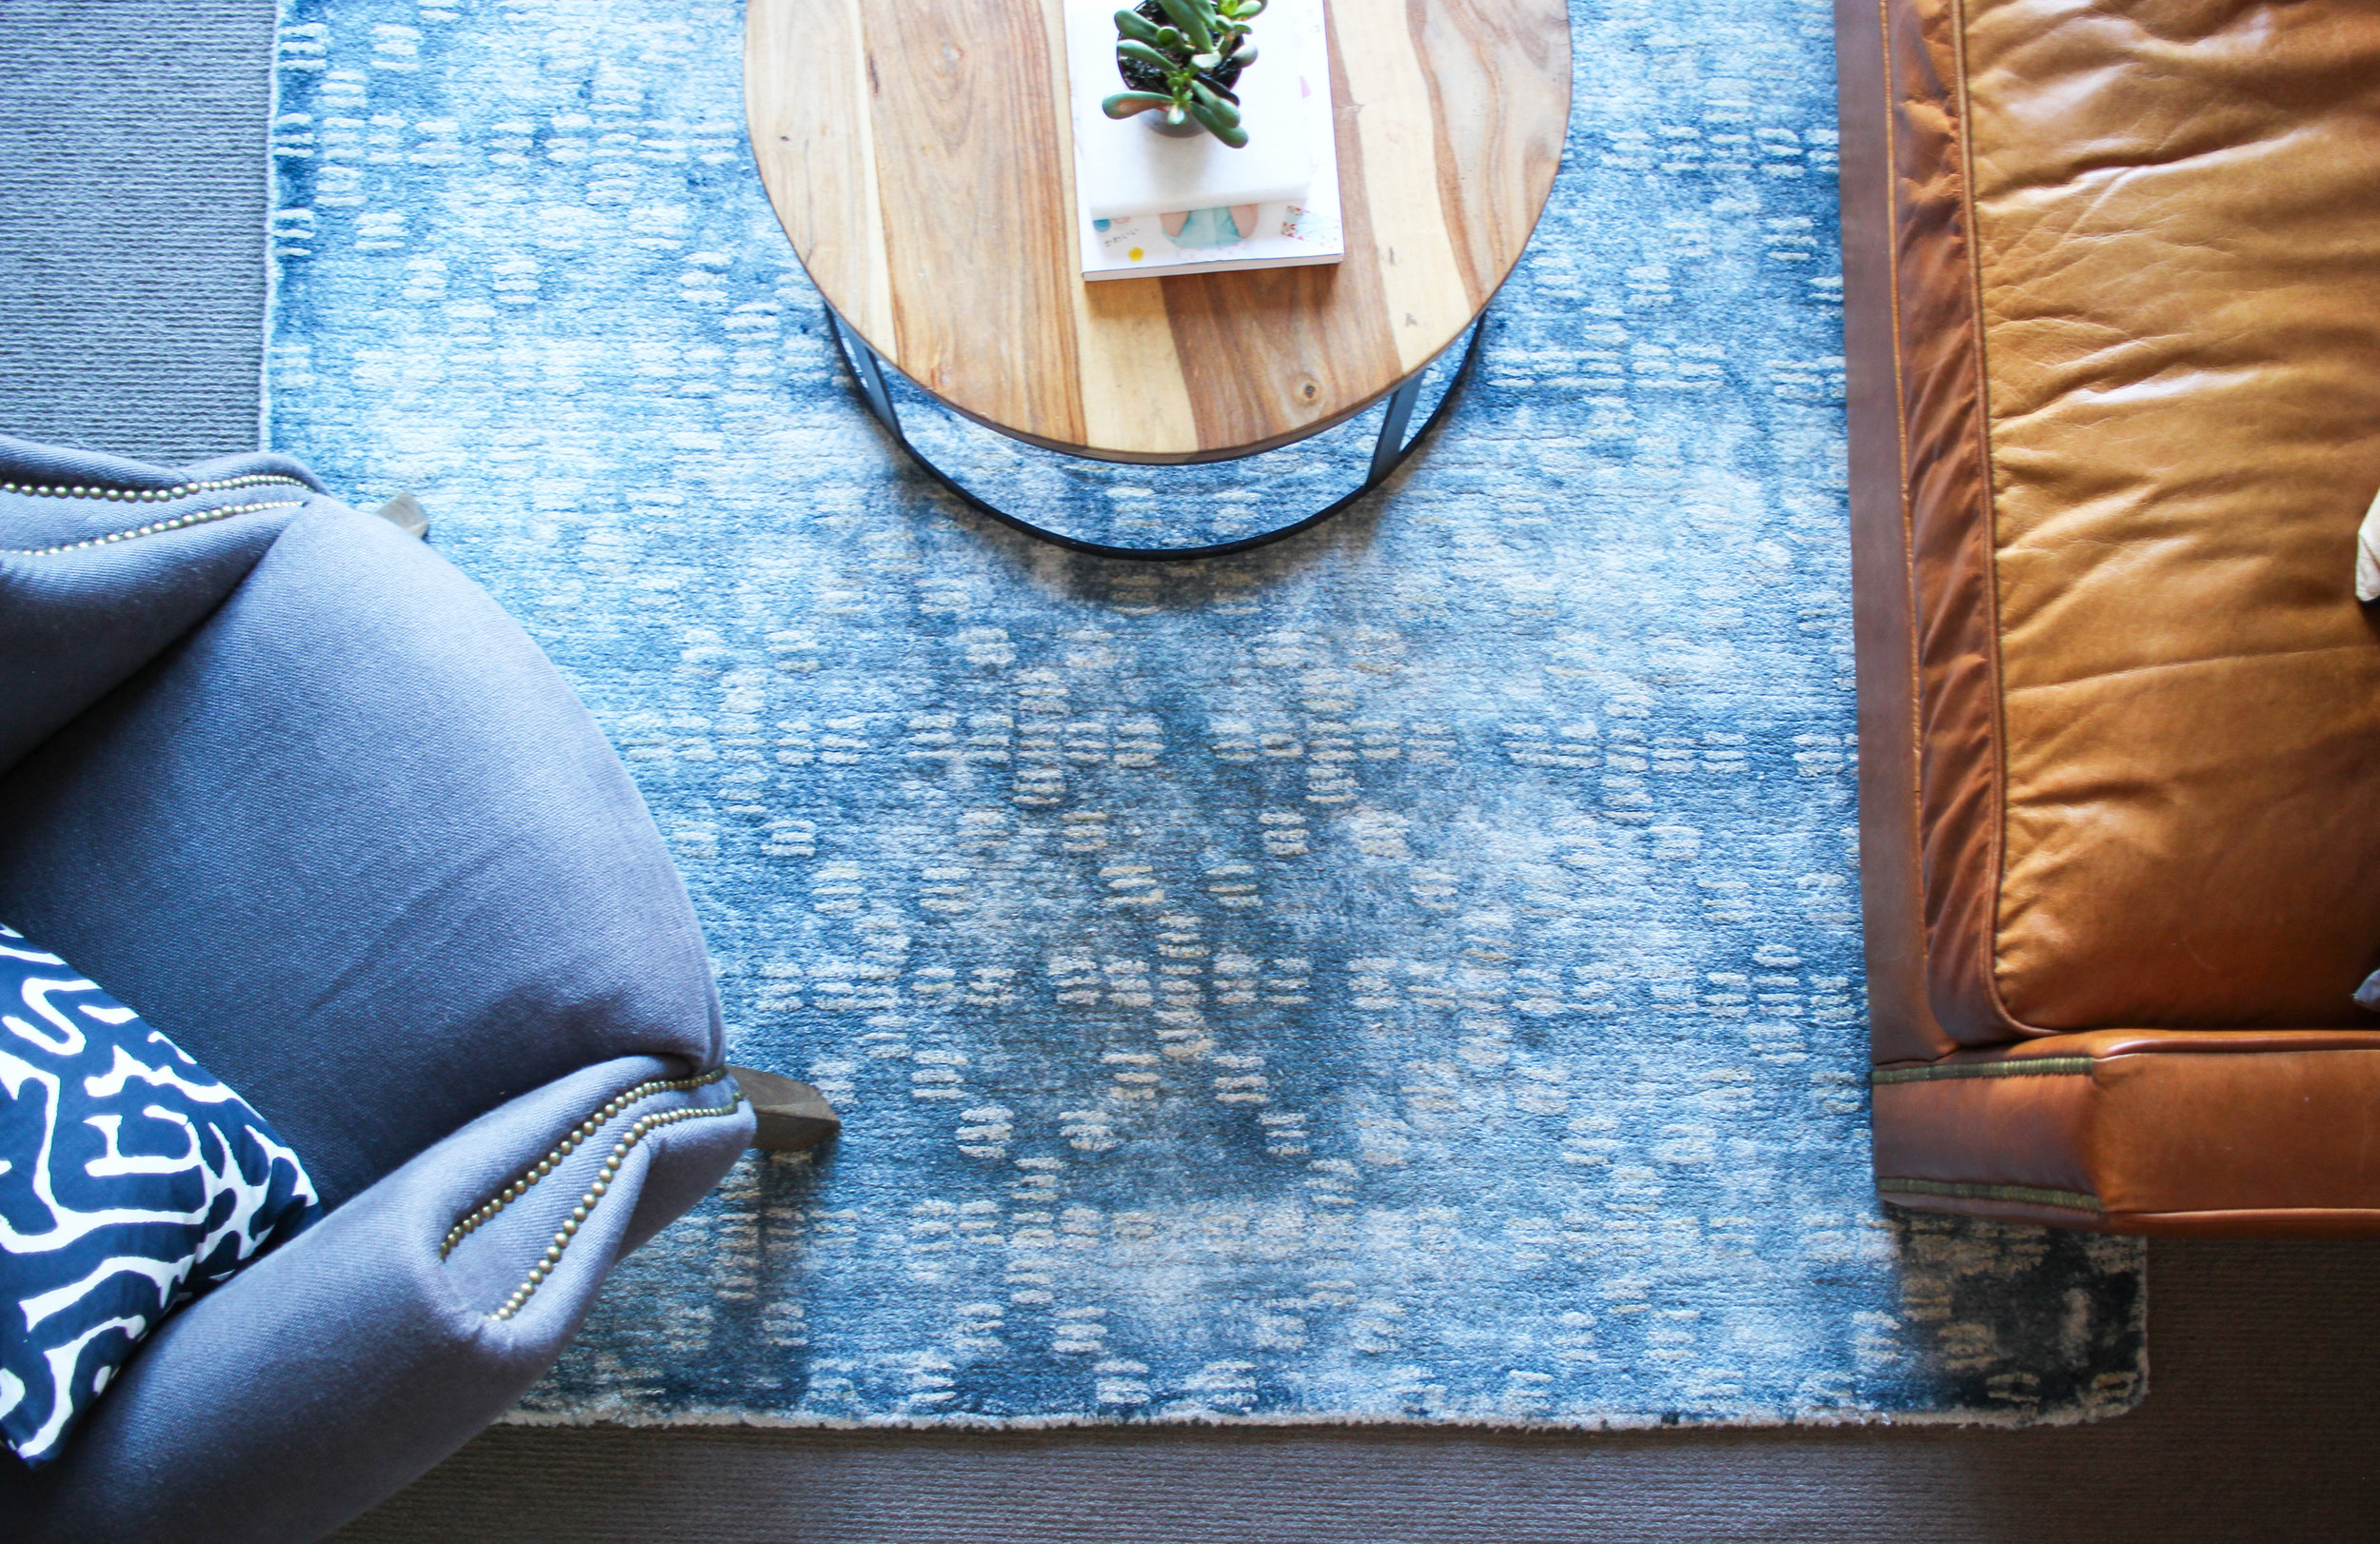 YOUR RUG SHOULD PULL EVERYTHING TOGETHER BY TOUCHING EVERY PIECE OF FURNITURE